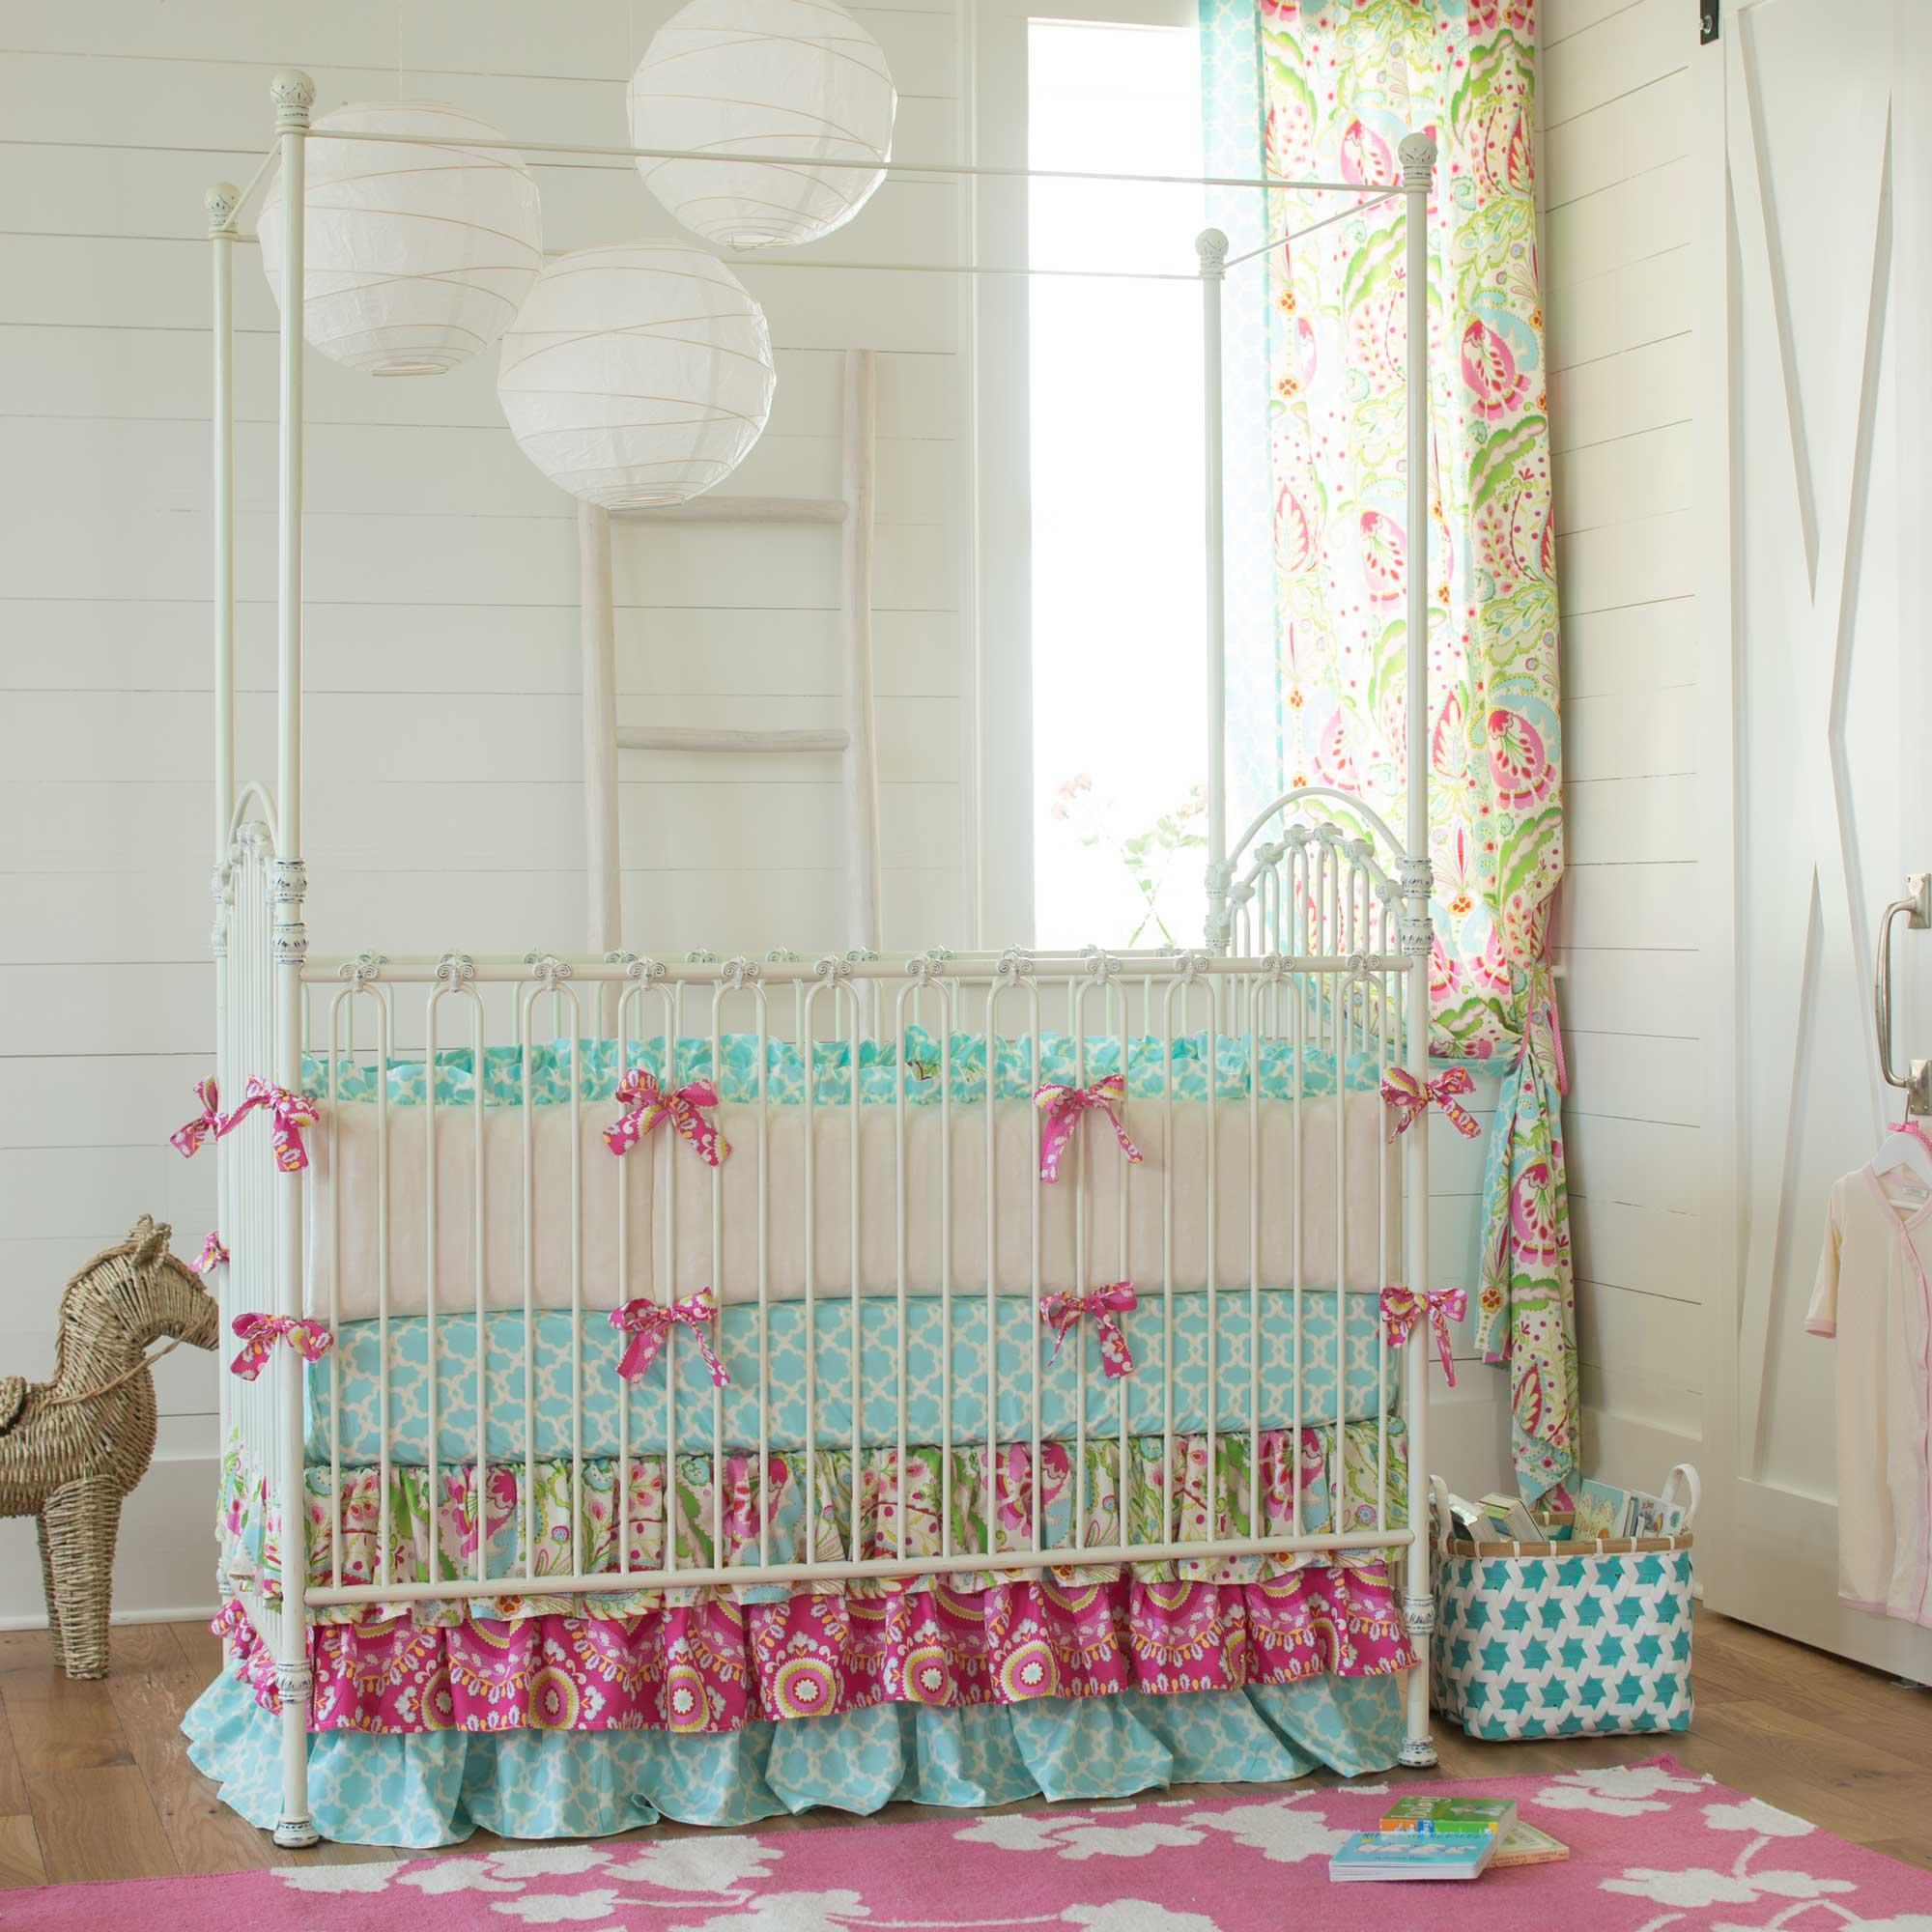 baby girl bedding love birds crib bedding · kumari garden crib bedding CTICEHV